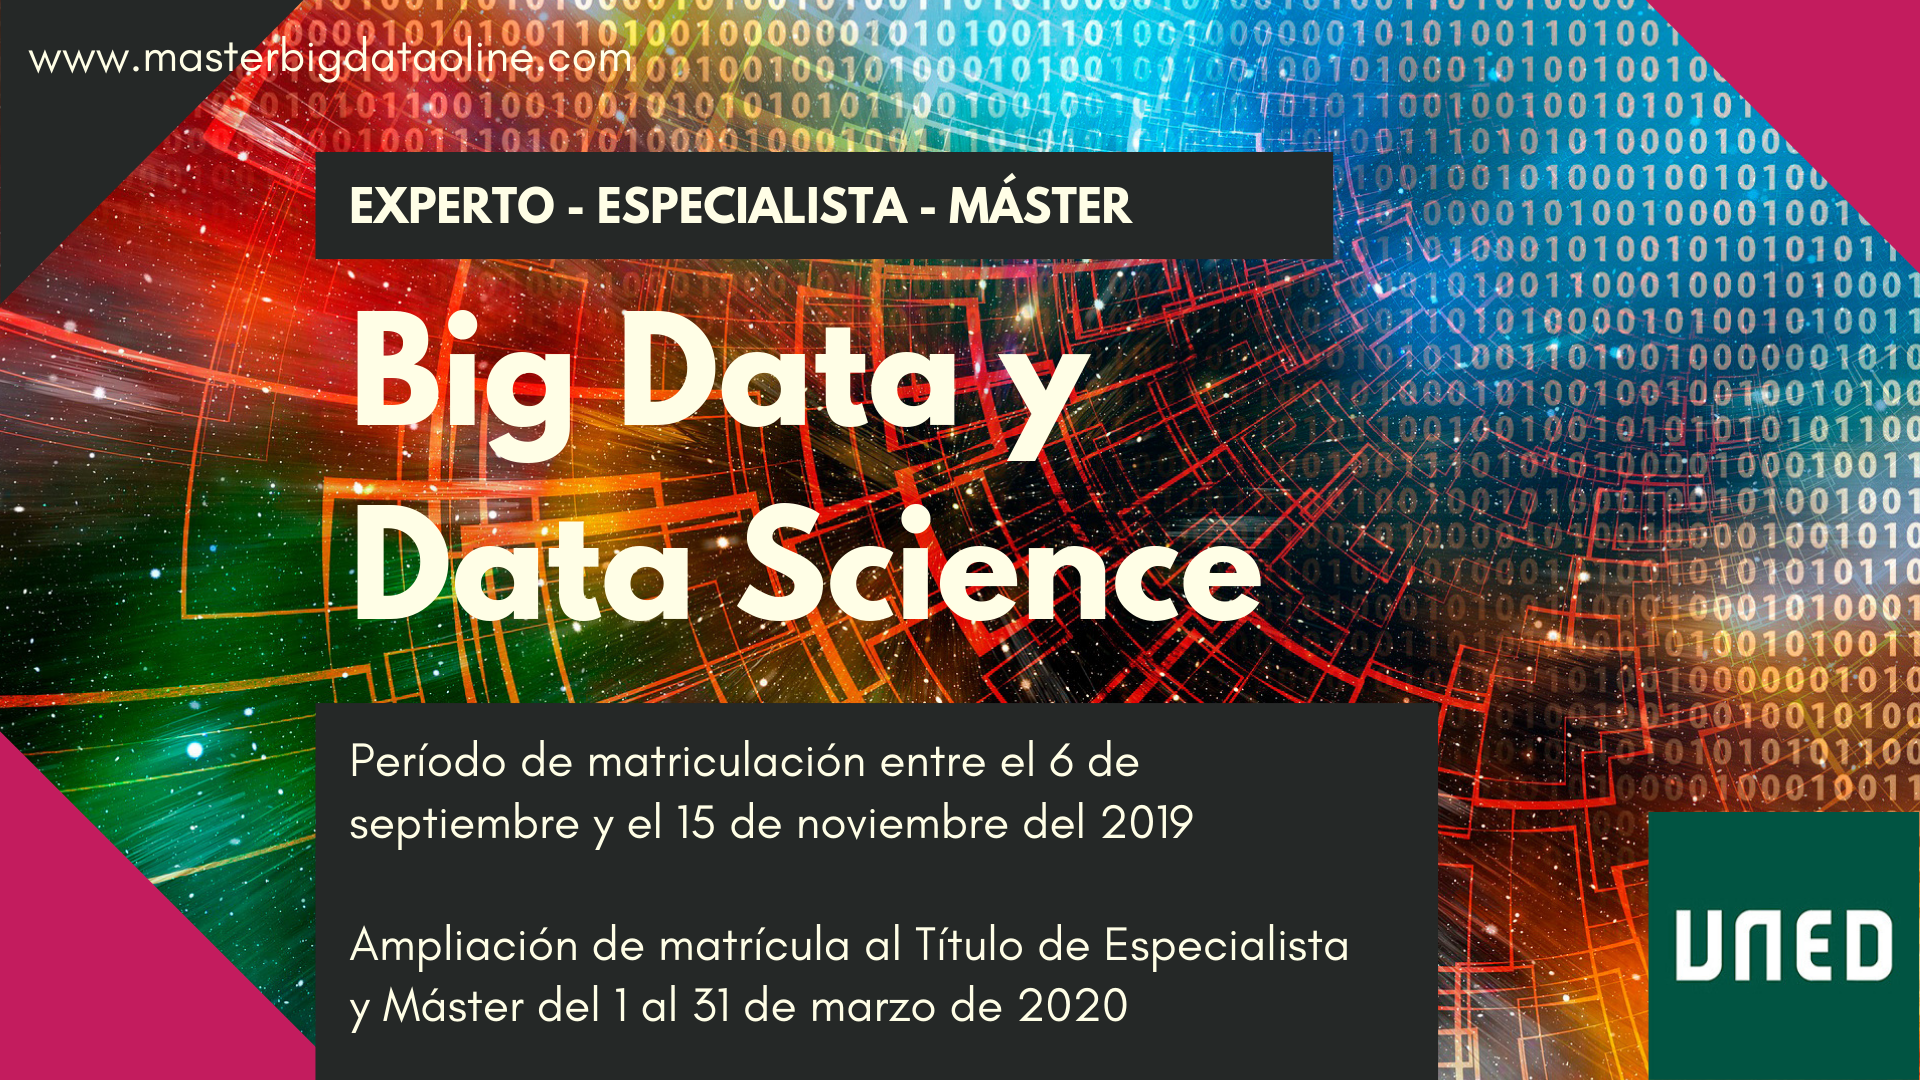 Máster en Big Data y Data Science de la UNED